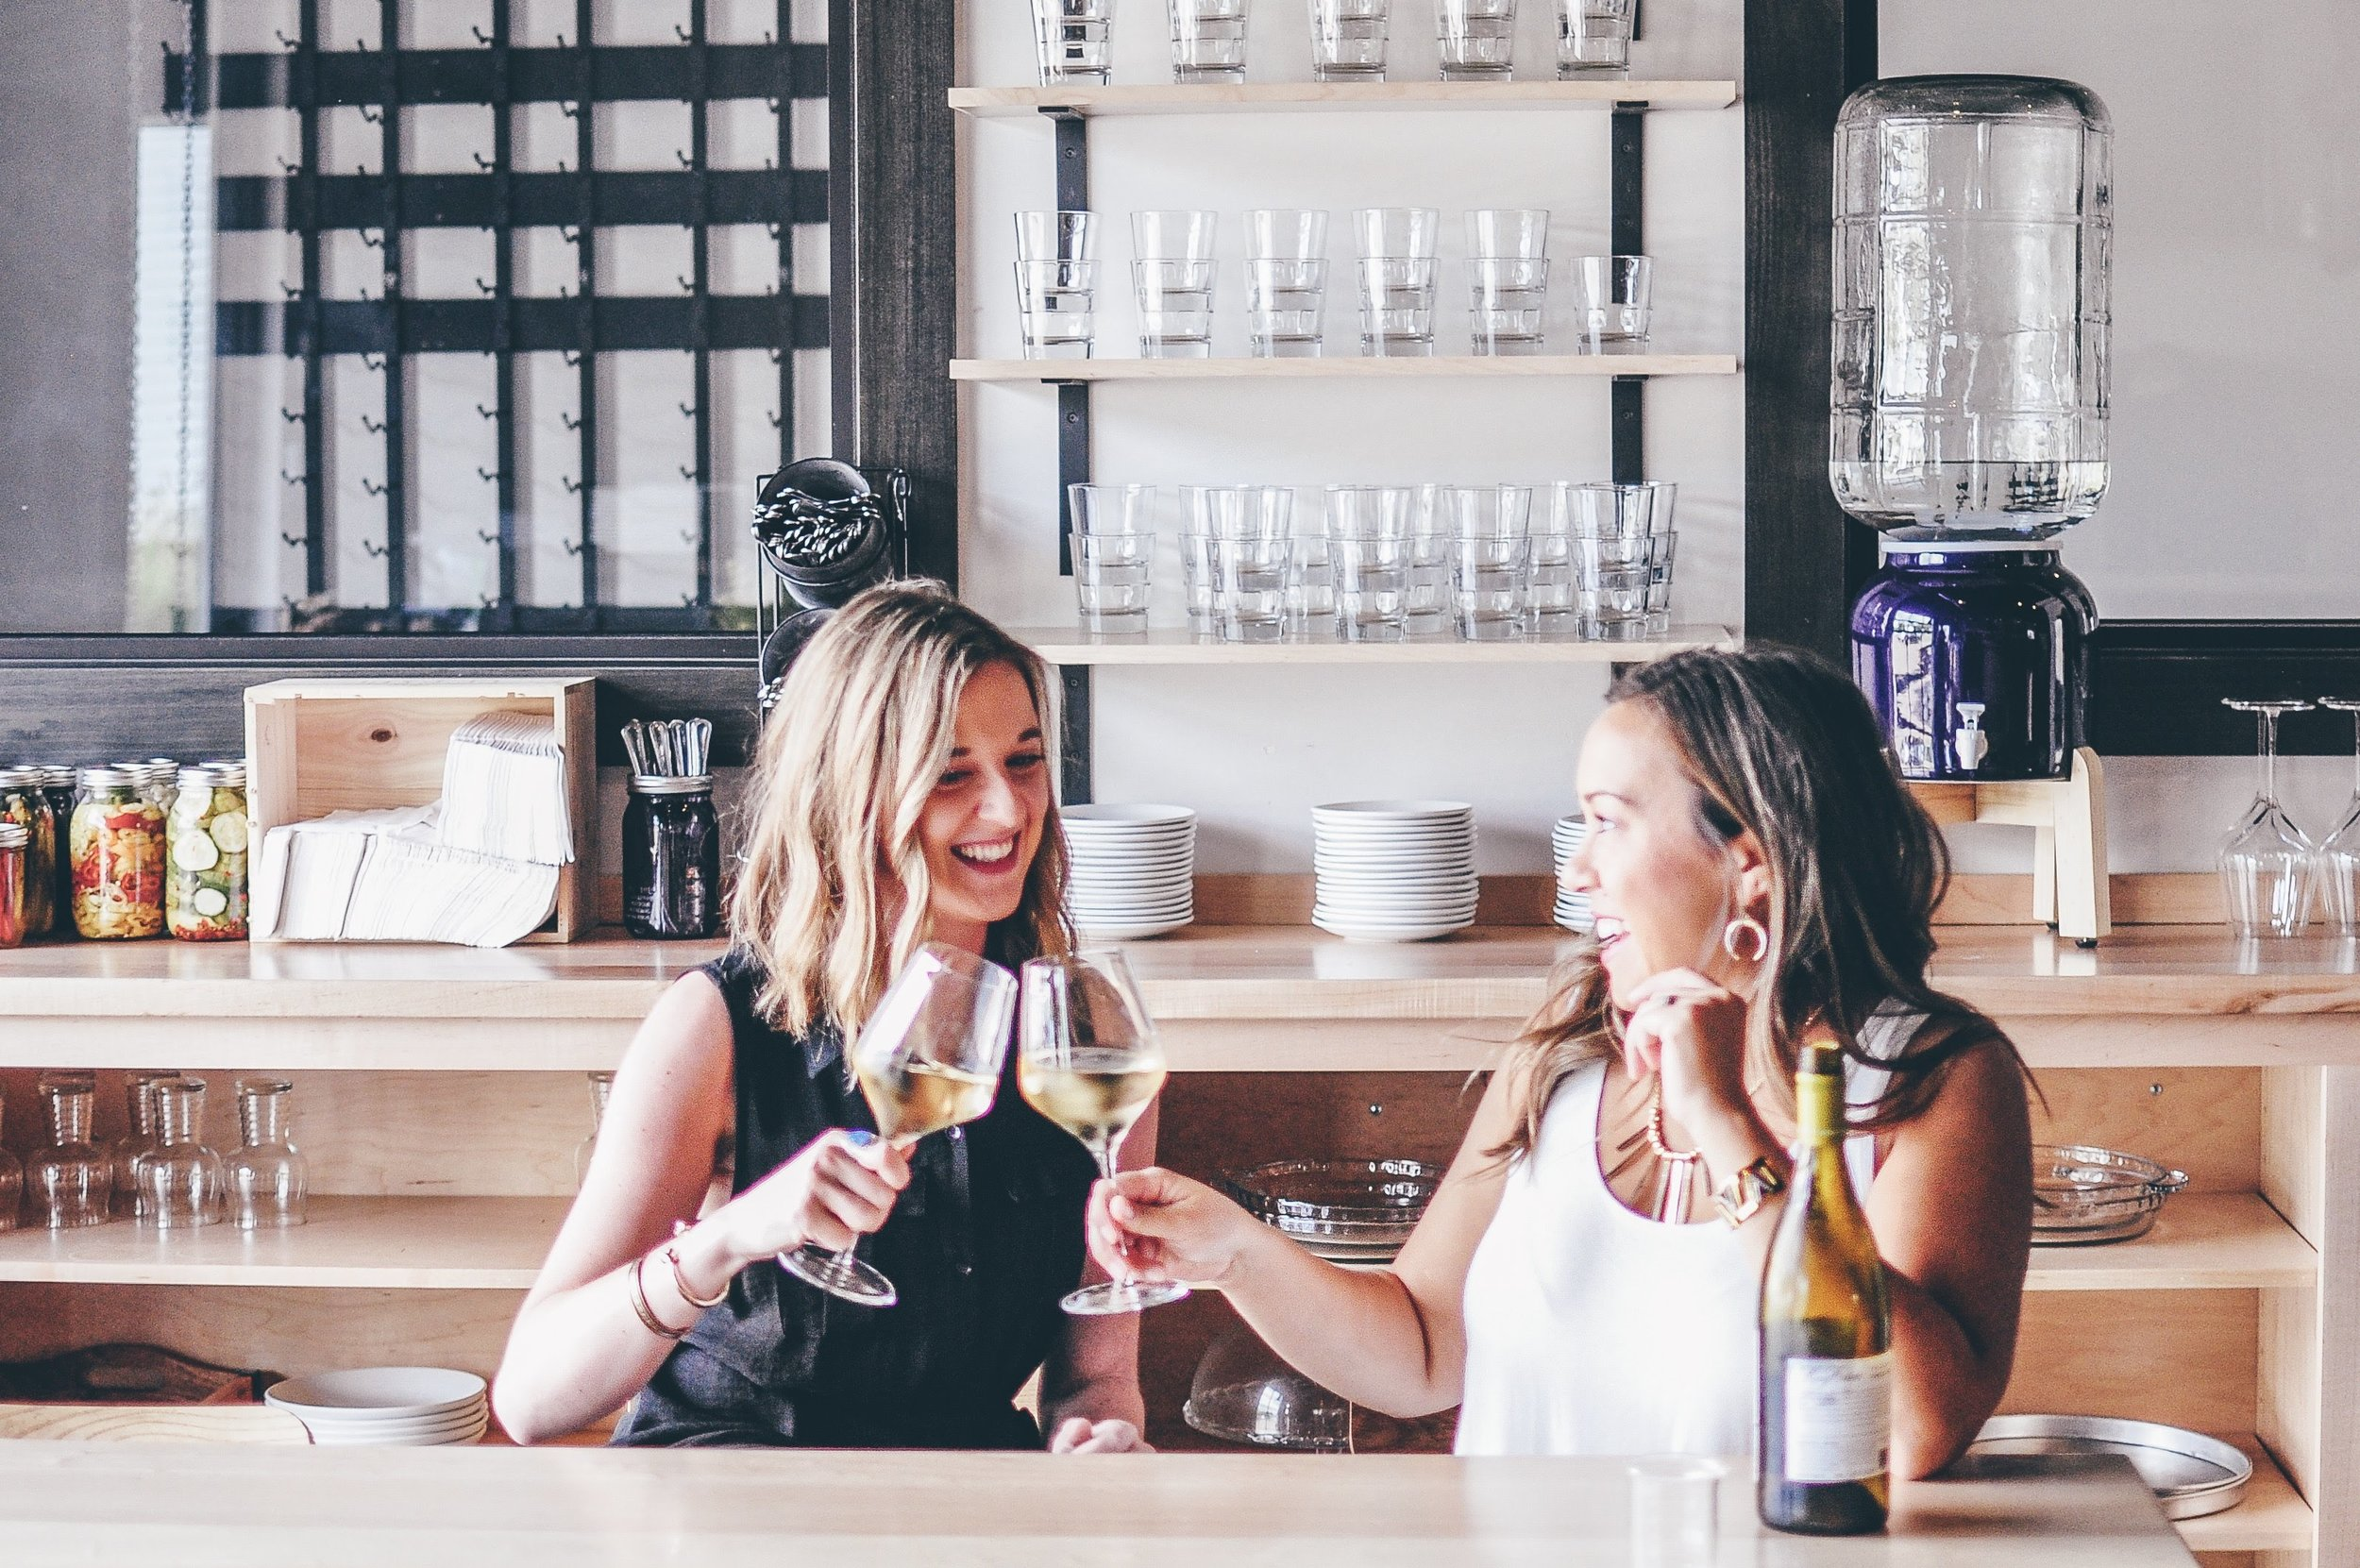 Nicole Casell & Anne McIntosh - owners of Alchemy Wine & Beer  (photo courtesy of Nicole and Anne at Alchemy)